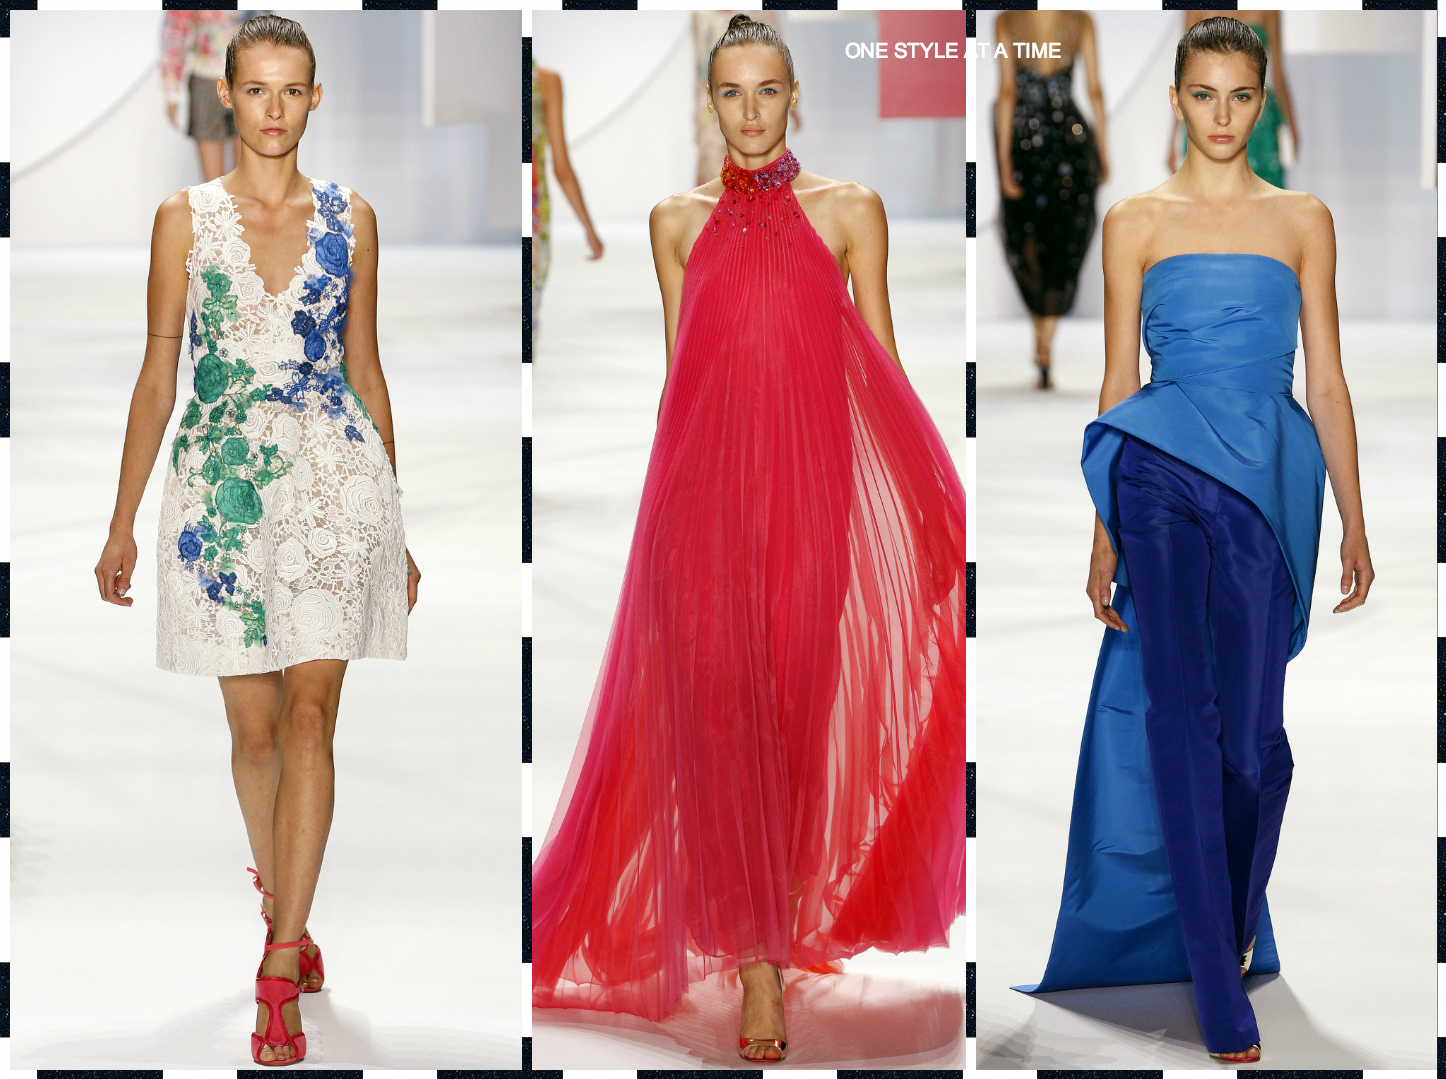 NYFW: SPRING '16 STRAIGHT FROM THE RUNWAY